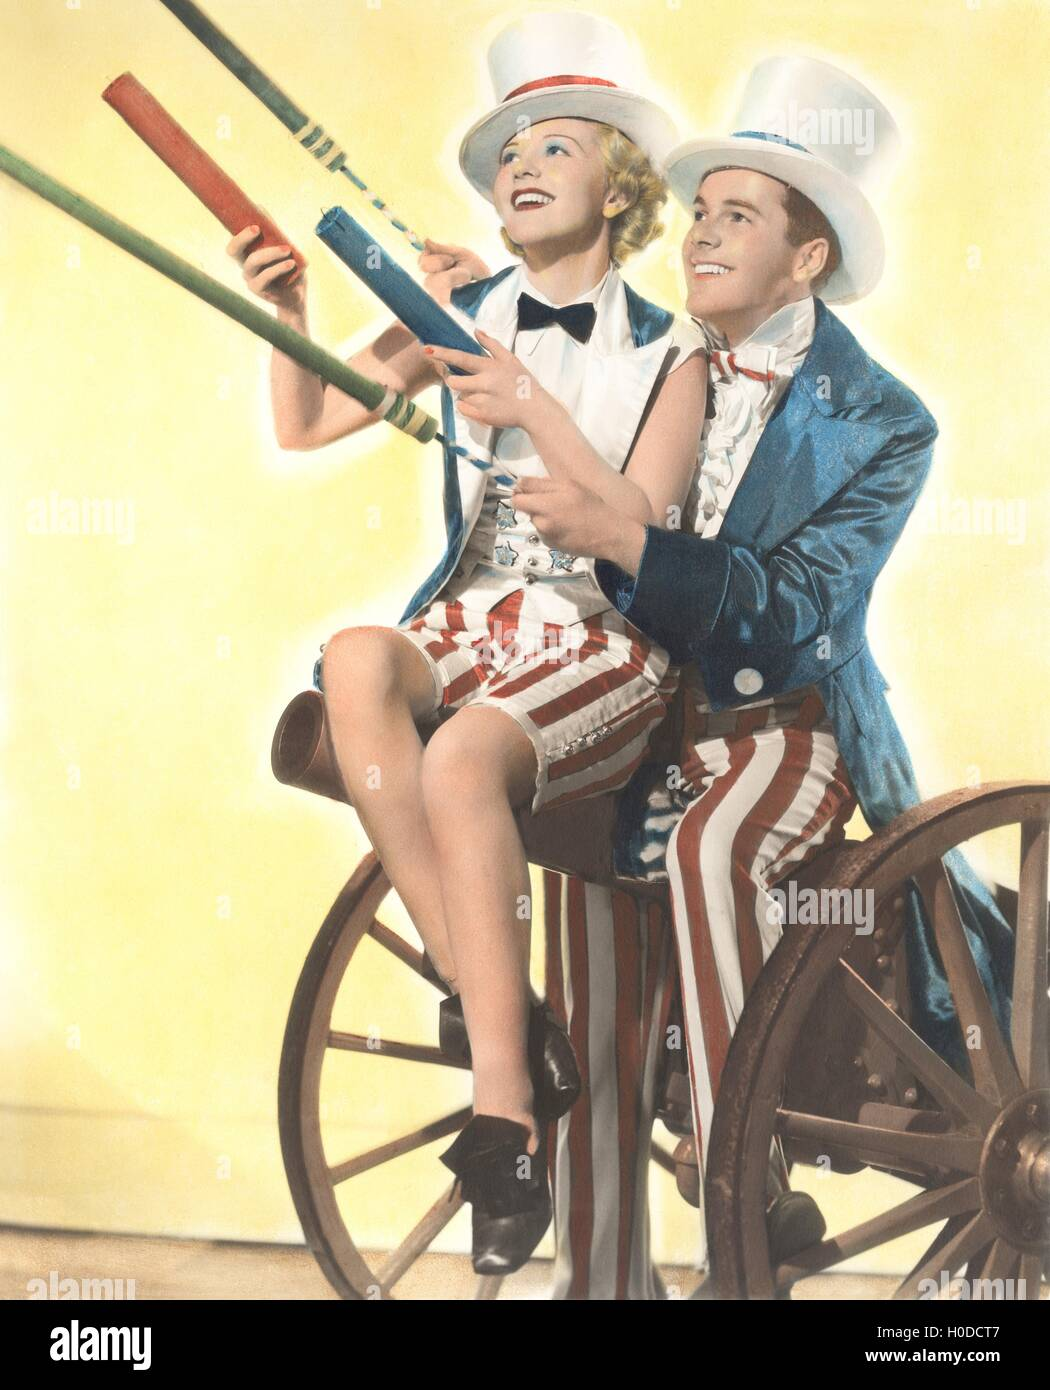 Two patriotic people with Roman candles celebrating July 4th - Stock Image